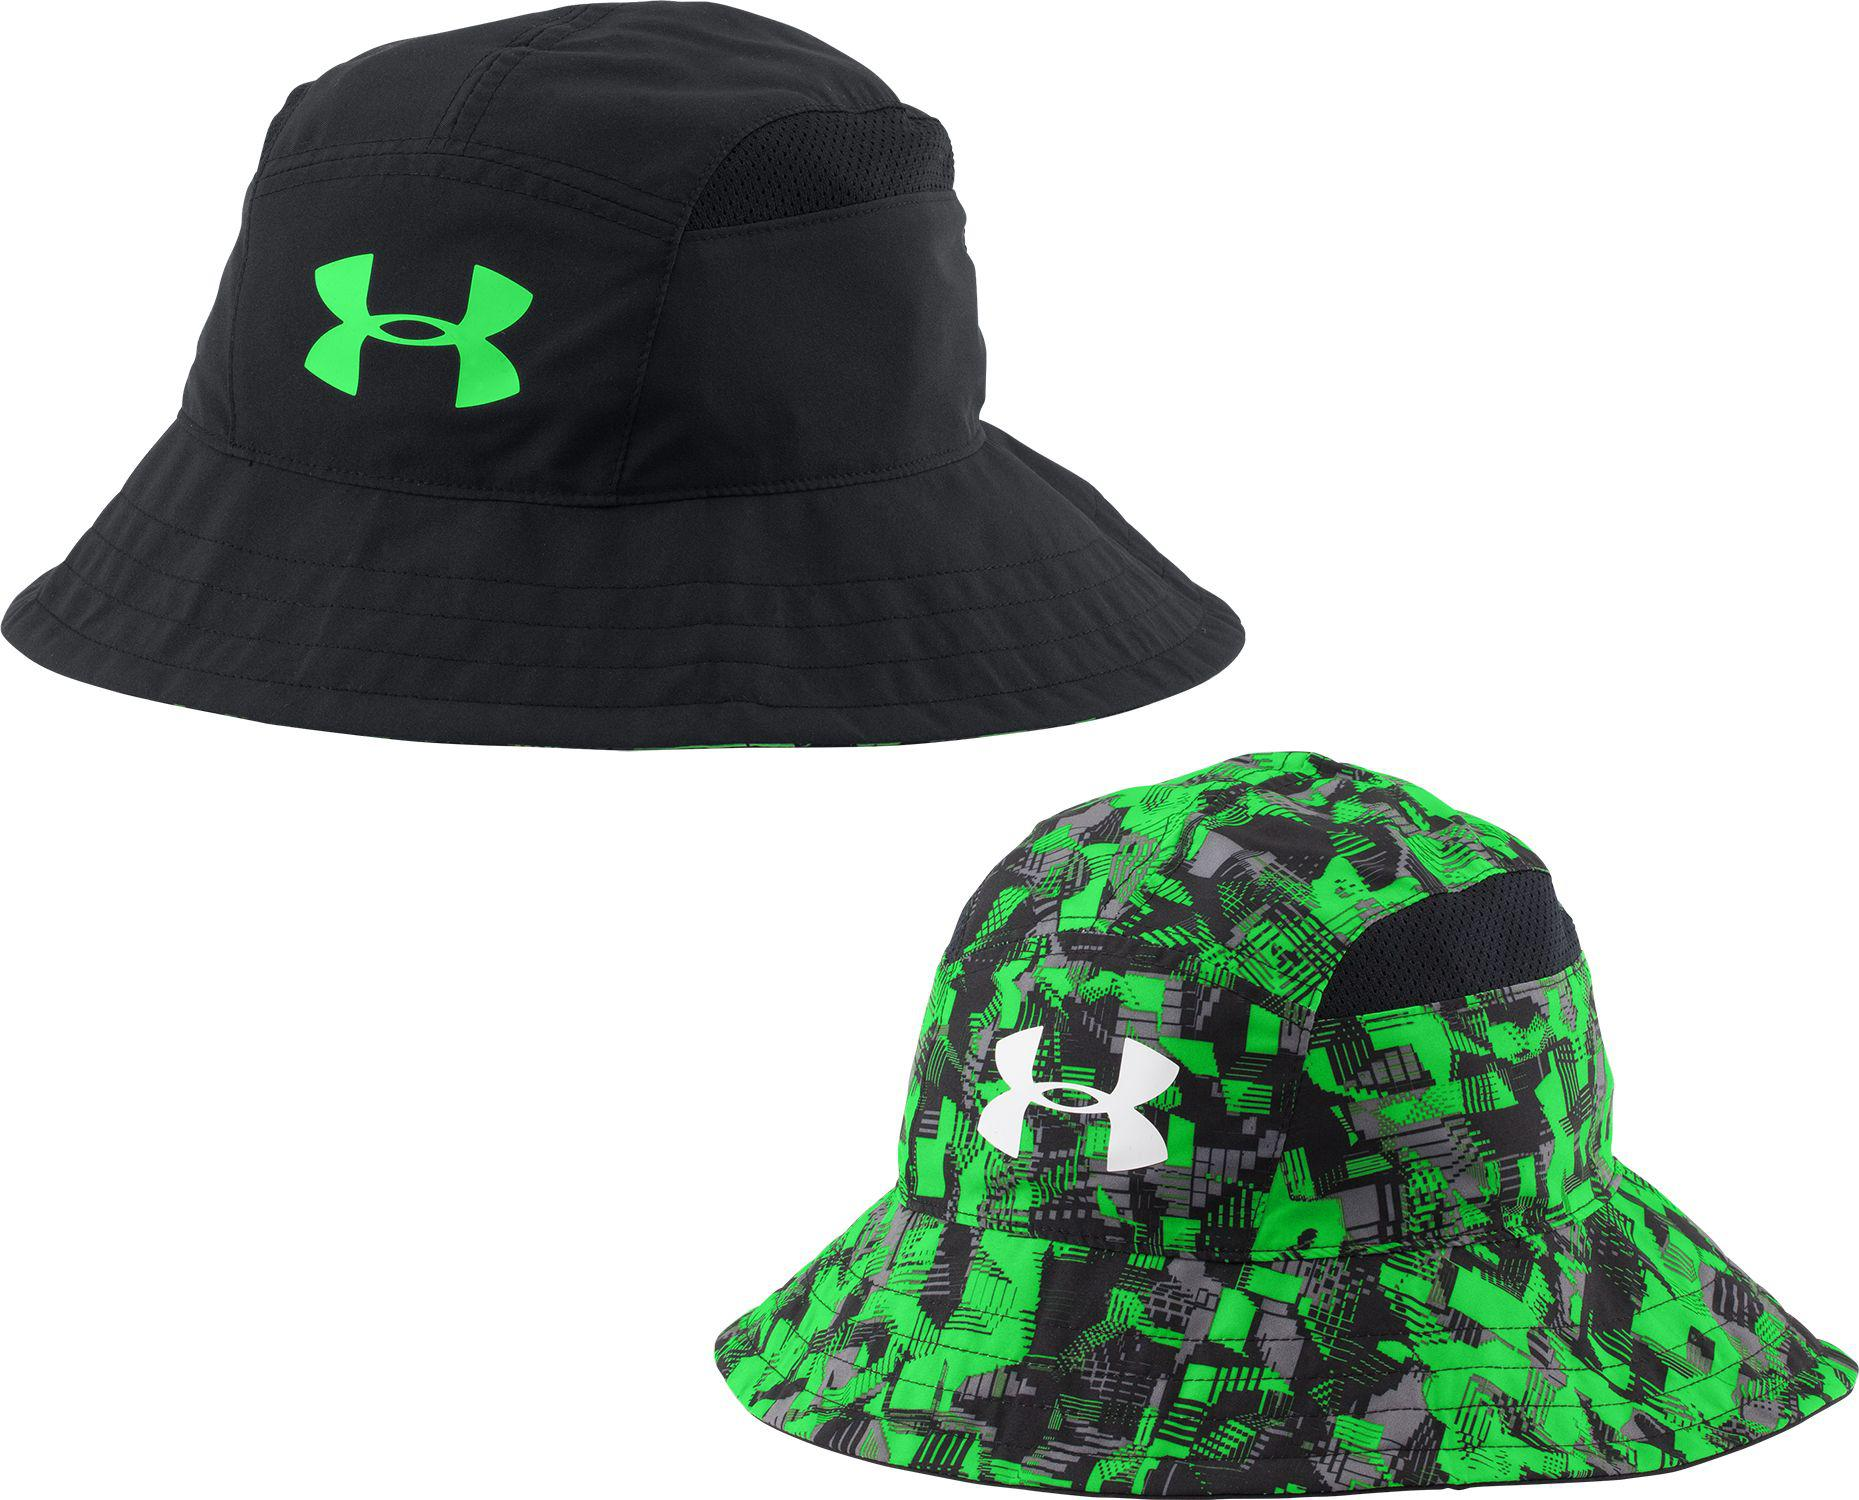 Lyst - Under Armour Oys  Switchback Reversible Bucket Hat in Black ... 9237f8b20eda